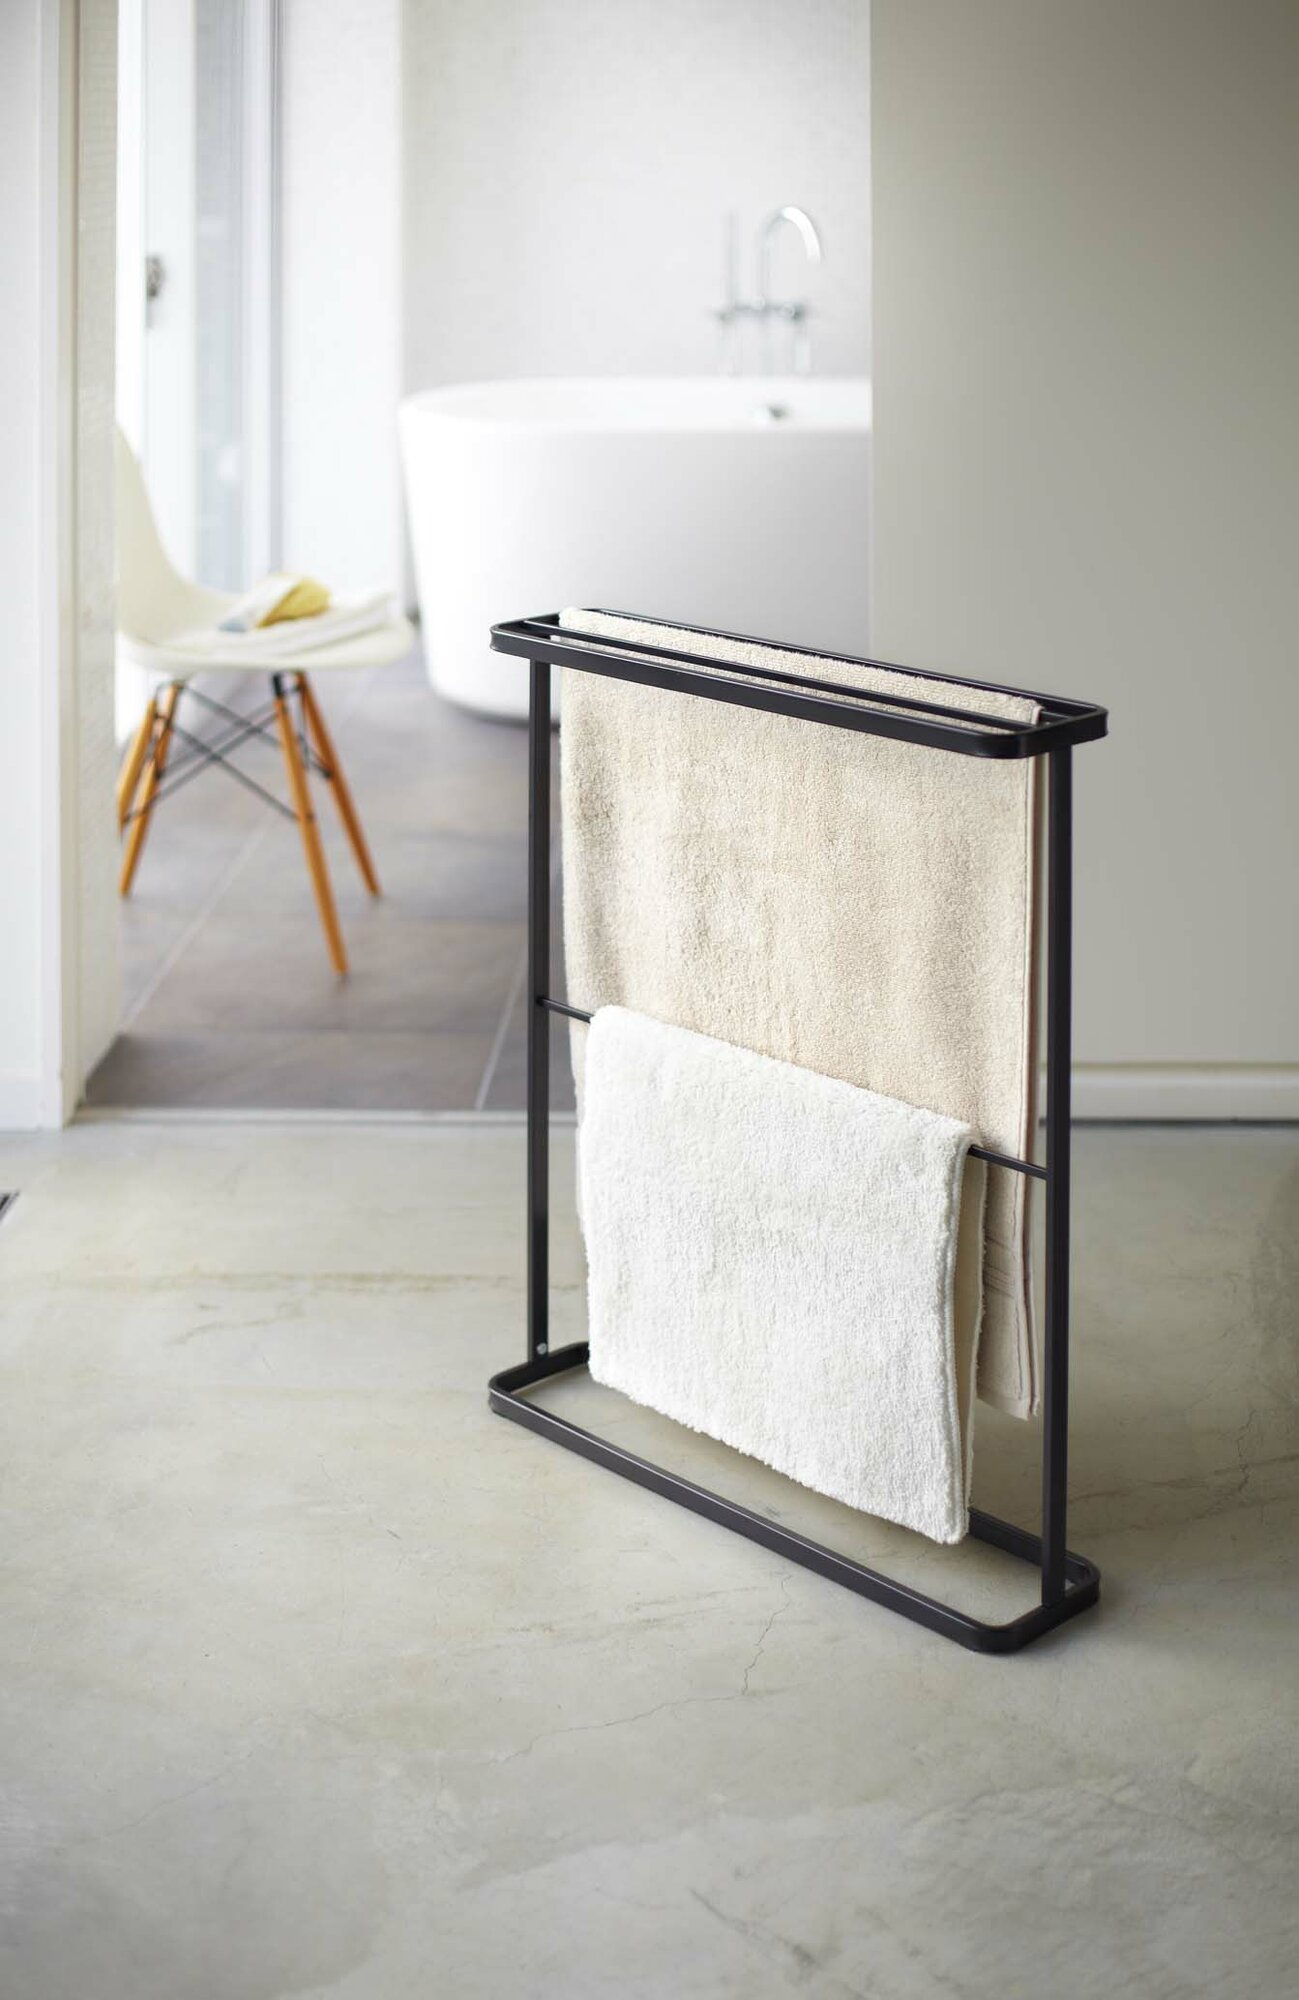 Yamazaki home tower free standing towel rack black for Free standing bar plans